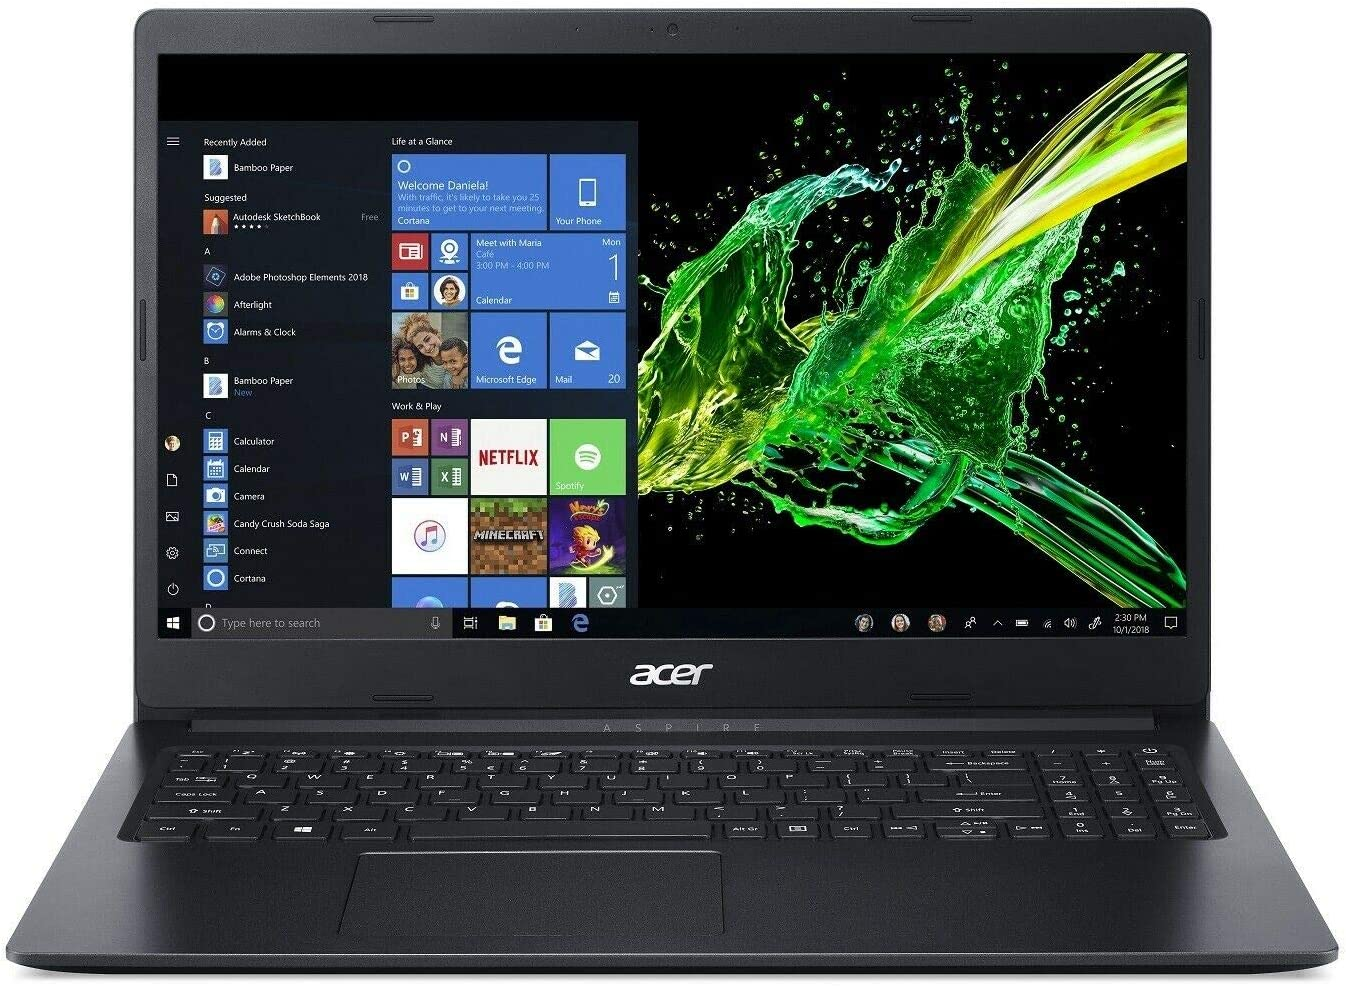 "Acer Aspire 1 15.6"" Laptop Intel Celeron N4000 1.1GHz 4GB Ram 64GB Flash Win10HS (Renewed)"